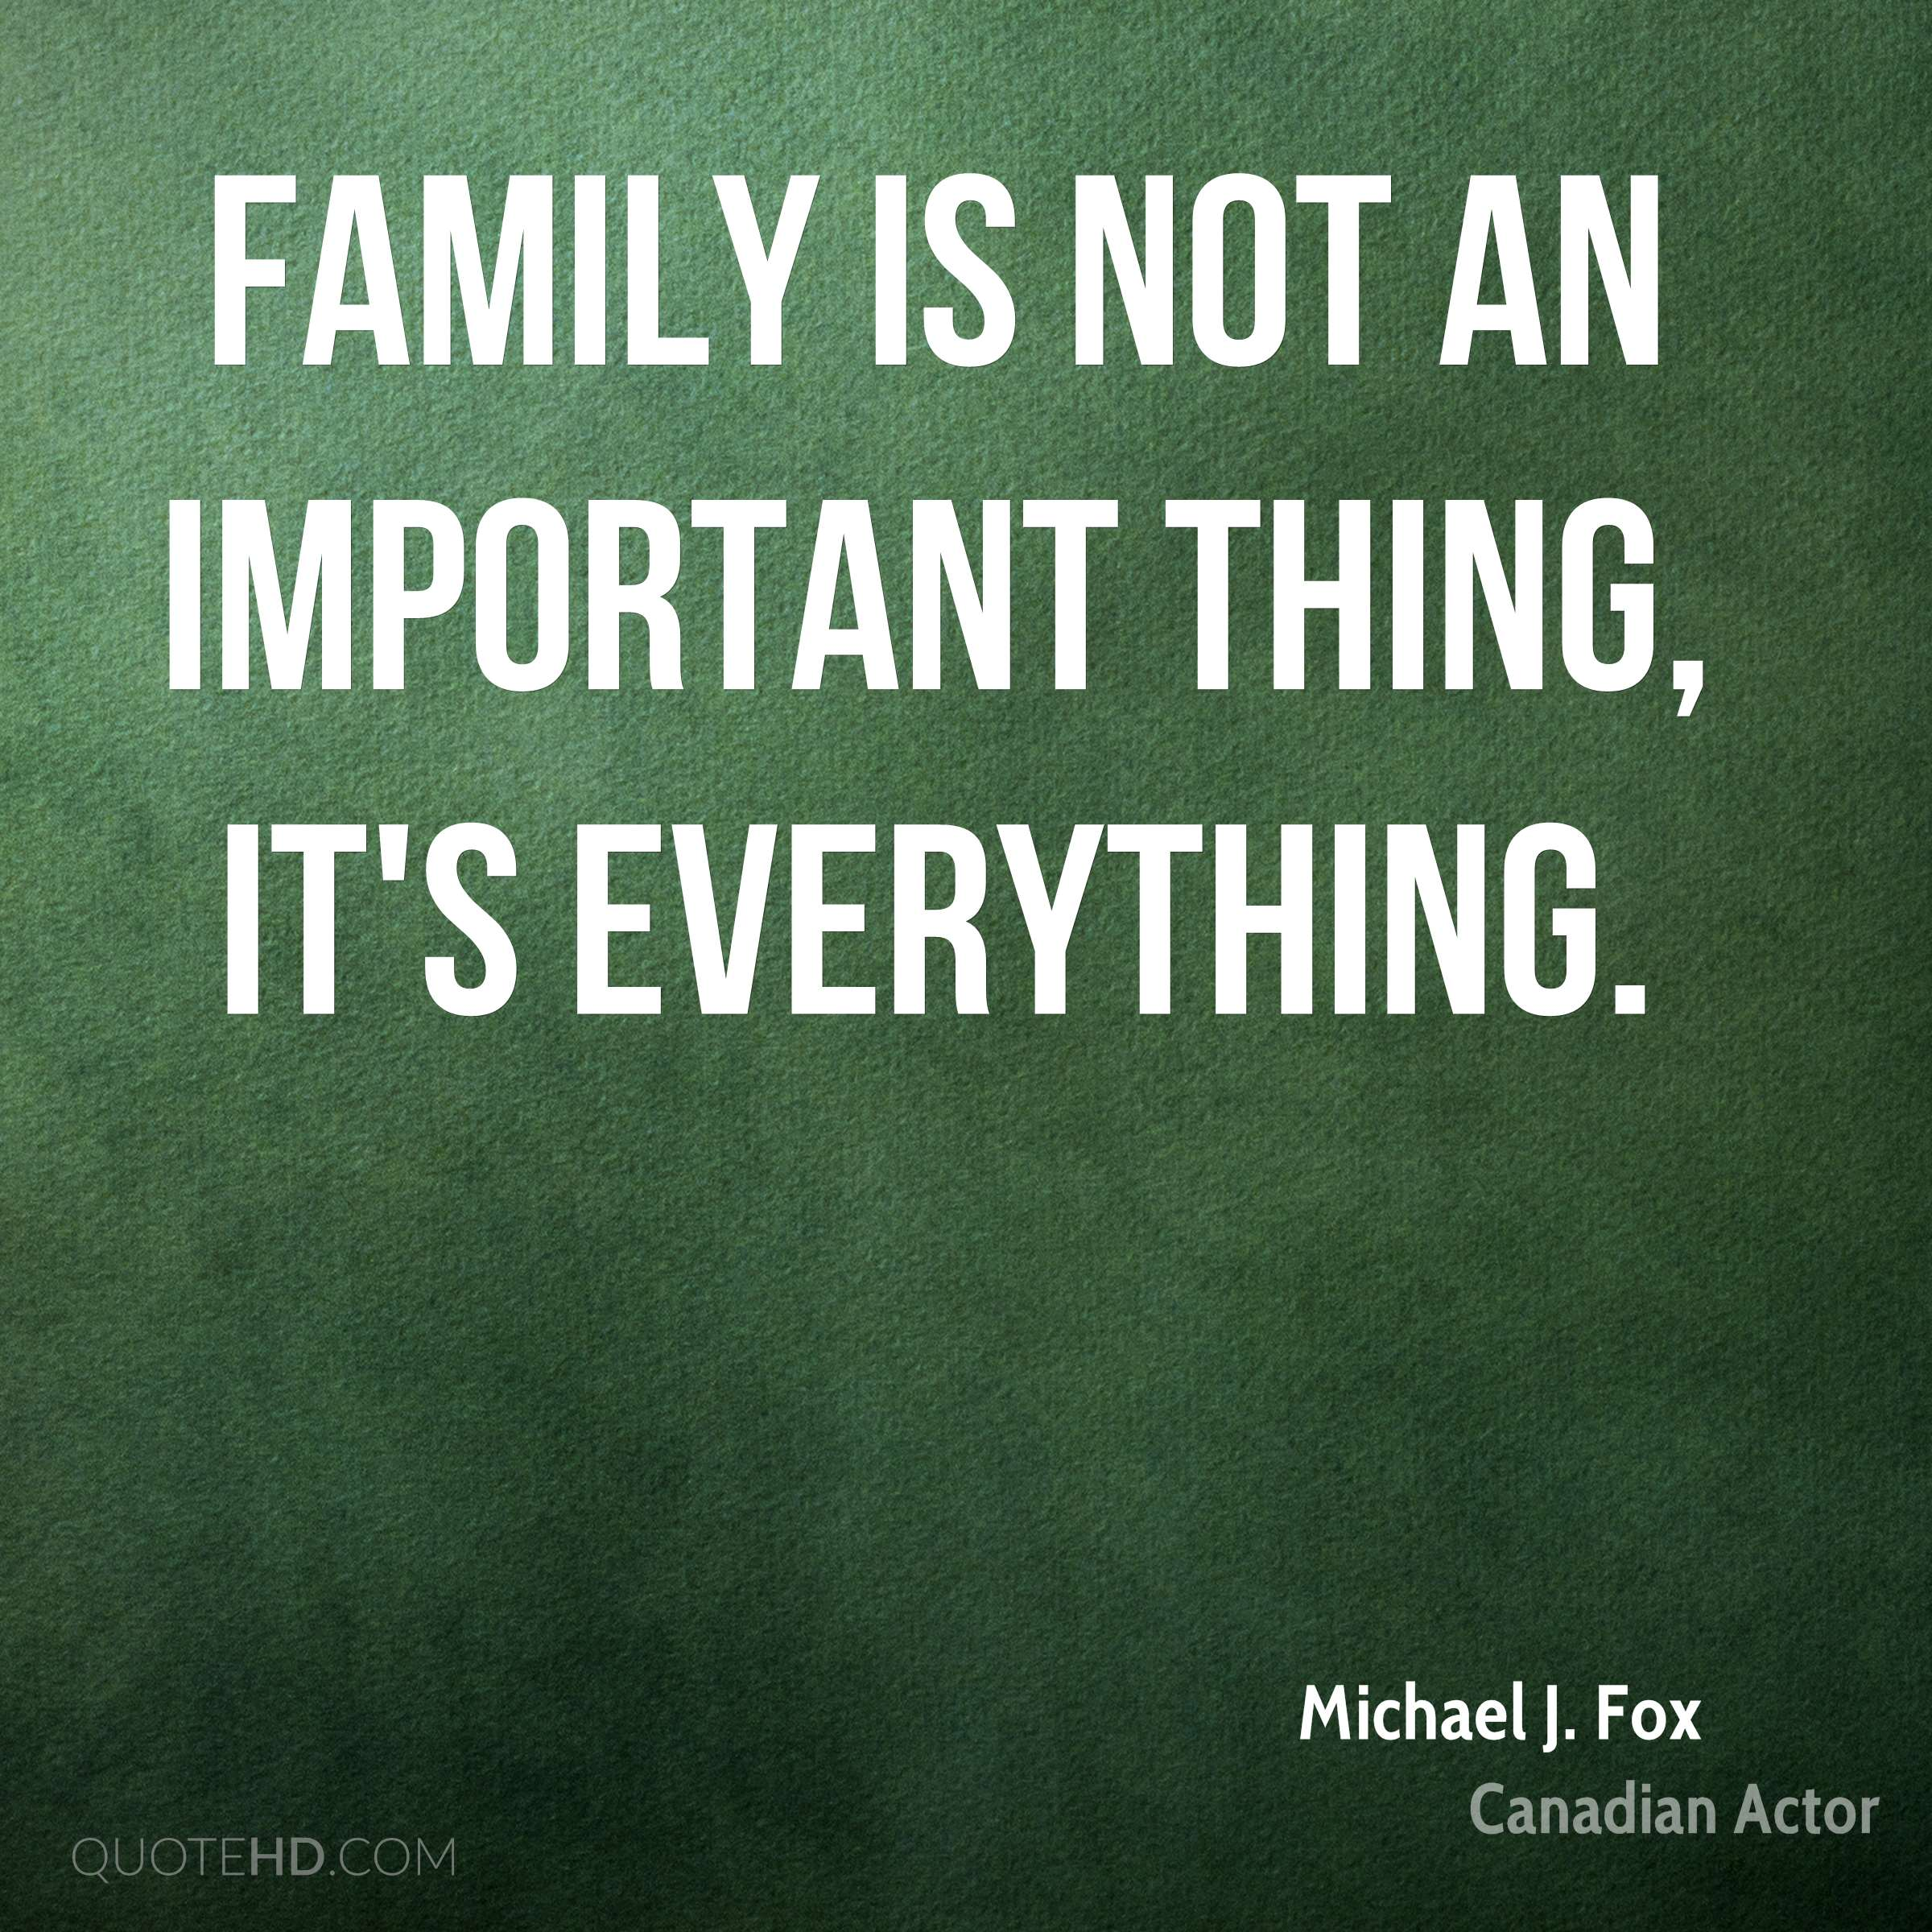 Why Family Is Important Quotes: Michael J. Fox Quotes